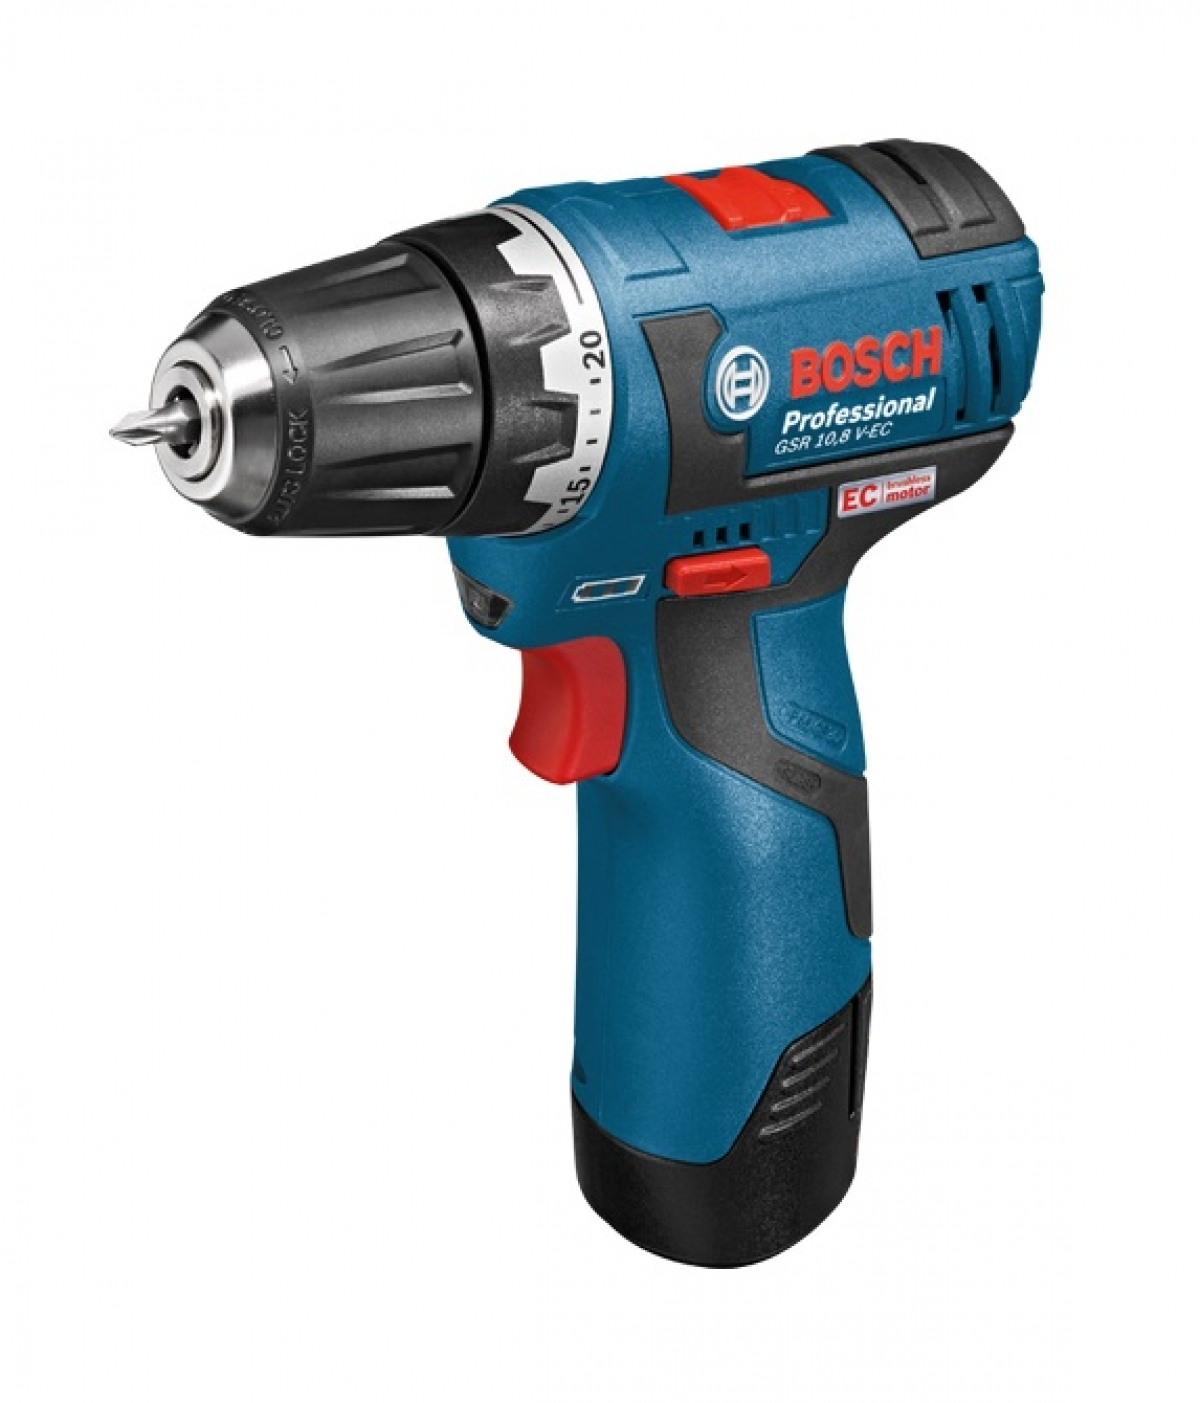 new bosch gsr 12v ec brushless cordless drill driver my power tools. Black Bedroom Furniture Sets. Home Design Ideas